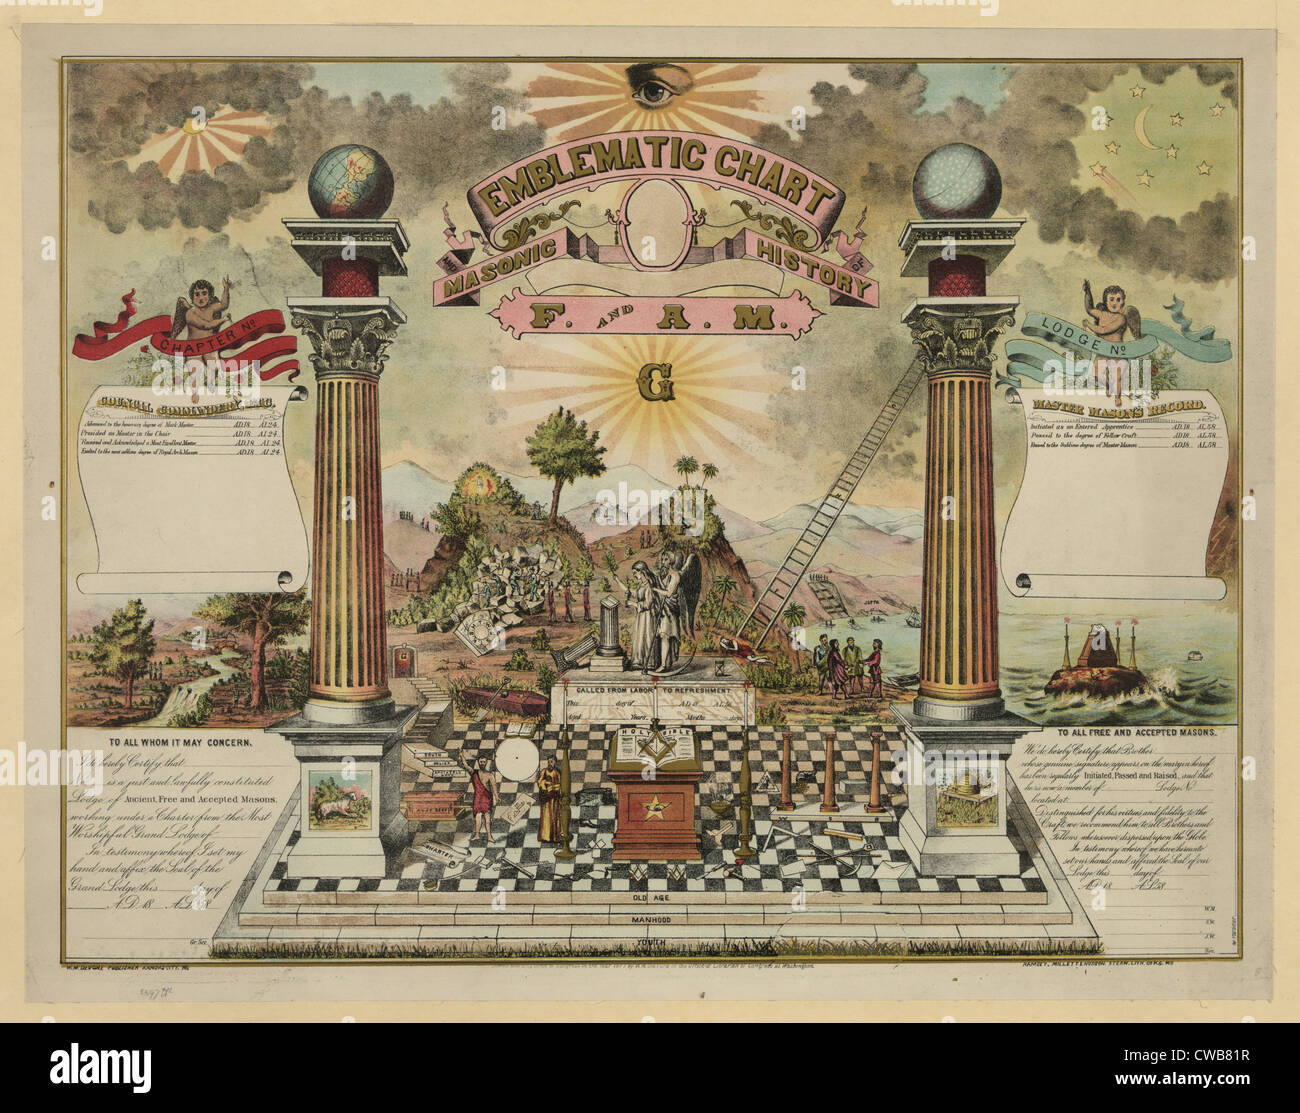 Masonic emblematic chart depicting all-seeing eye, ark, beehive, lamb, globes on top of columns, square and compass, - Stock Image